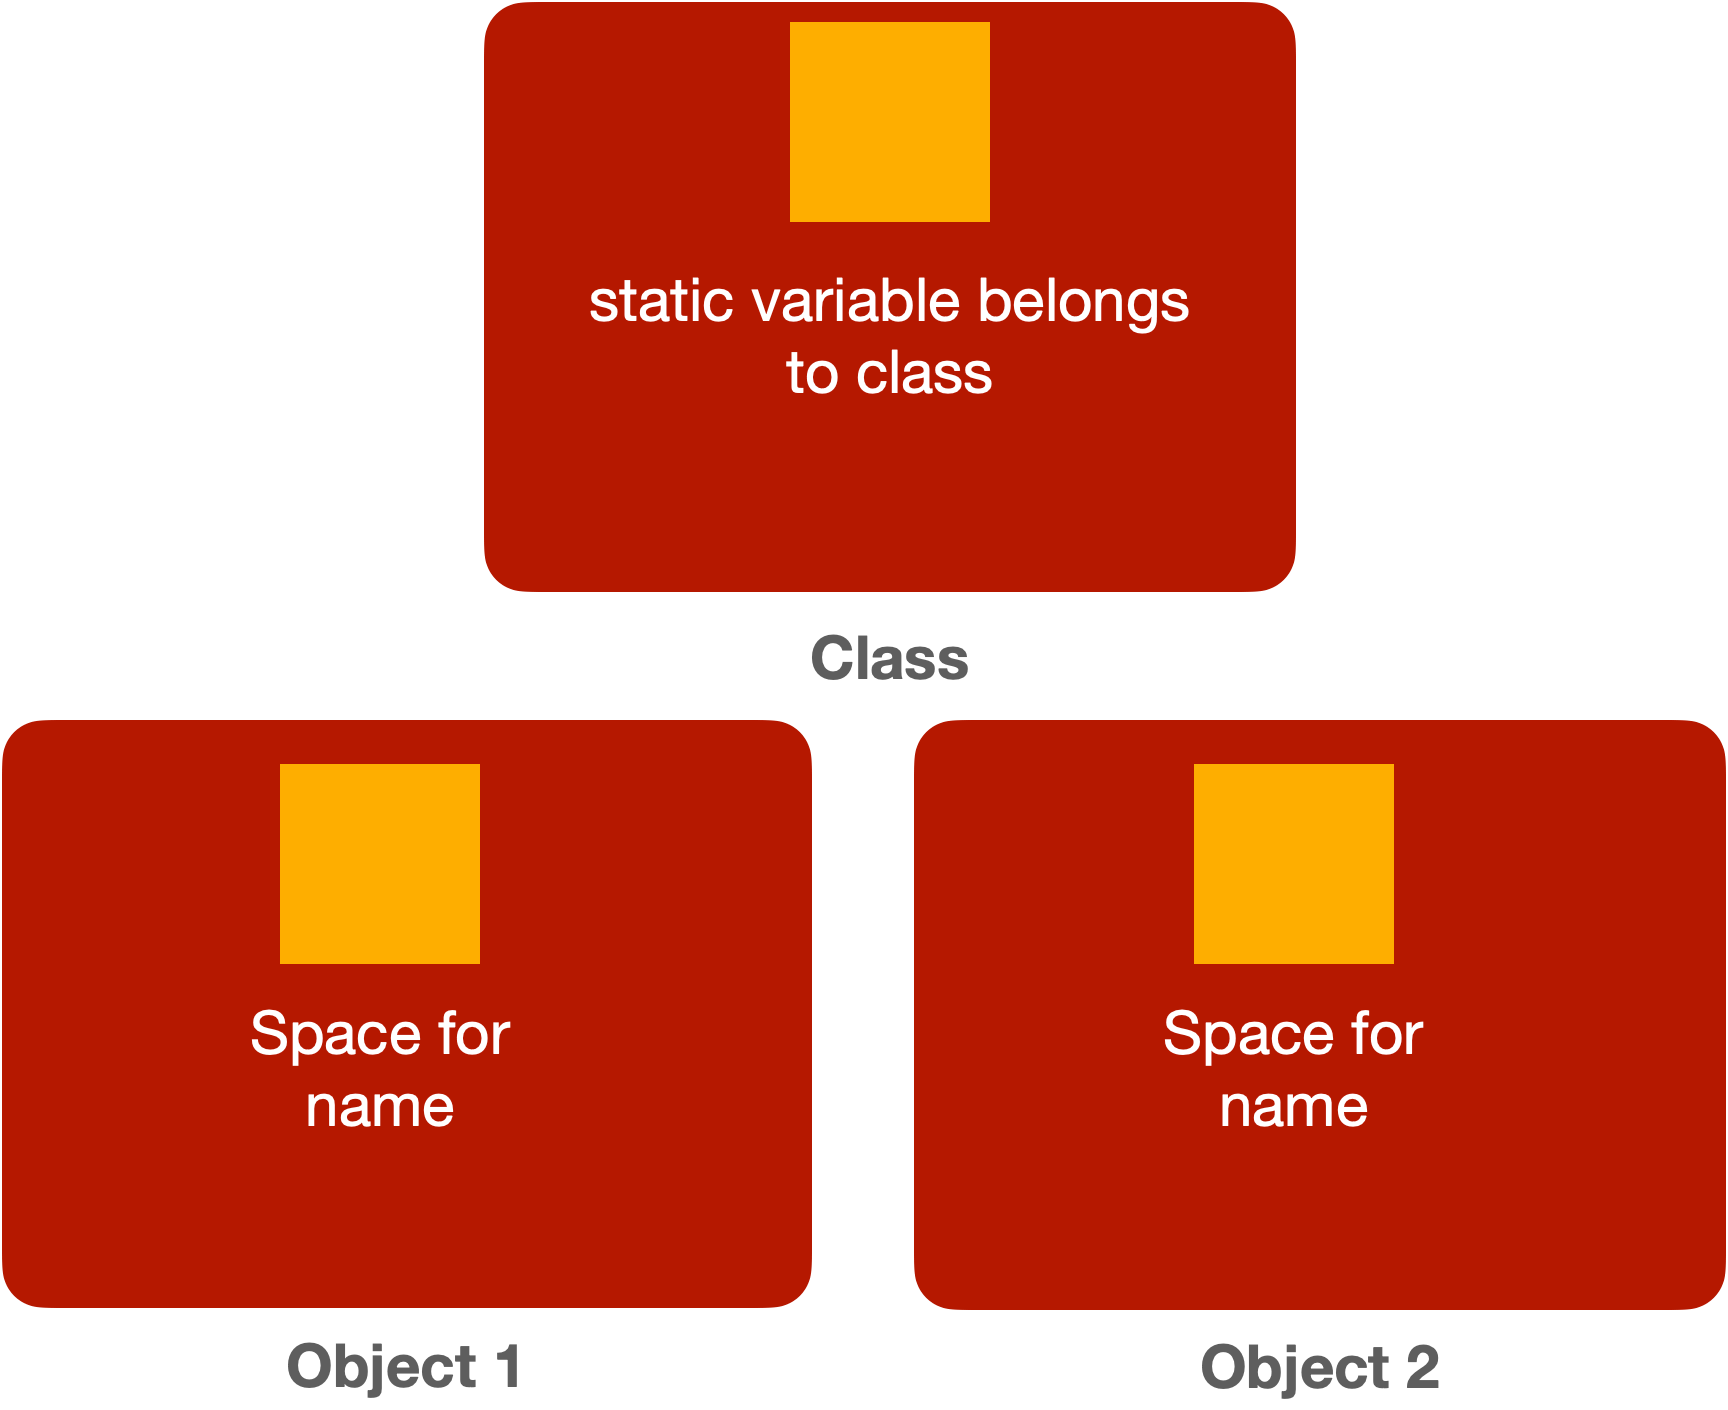 static variable space allocation in Java